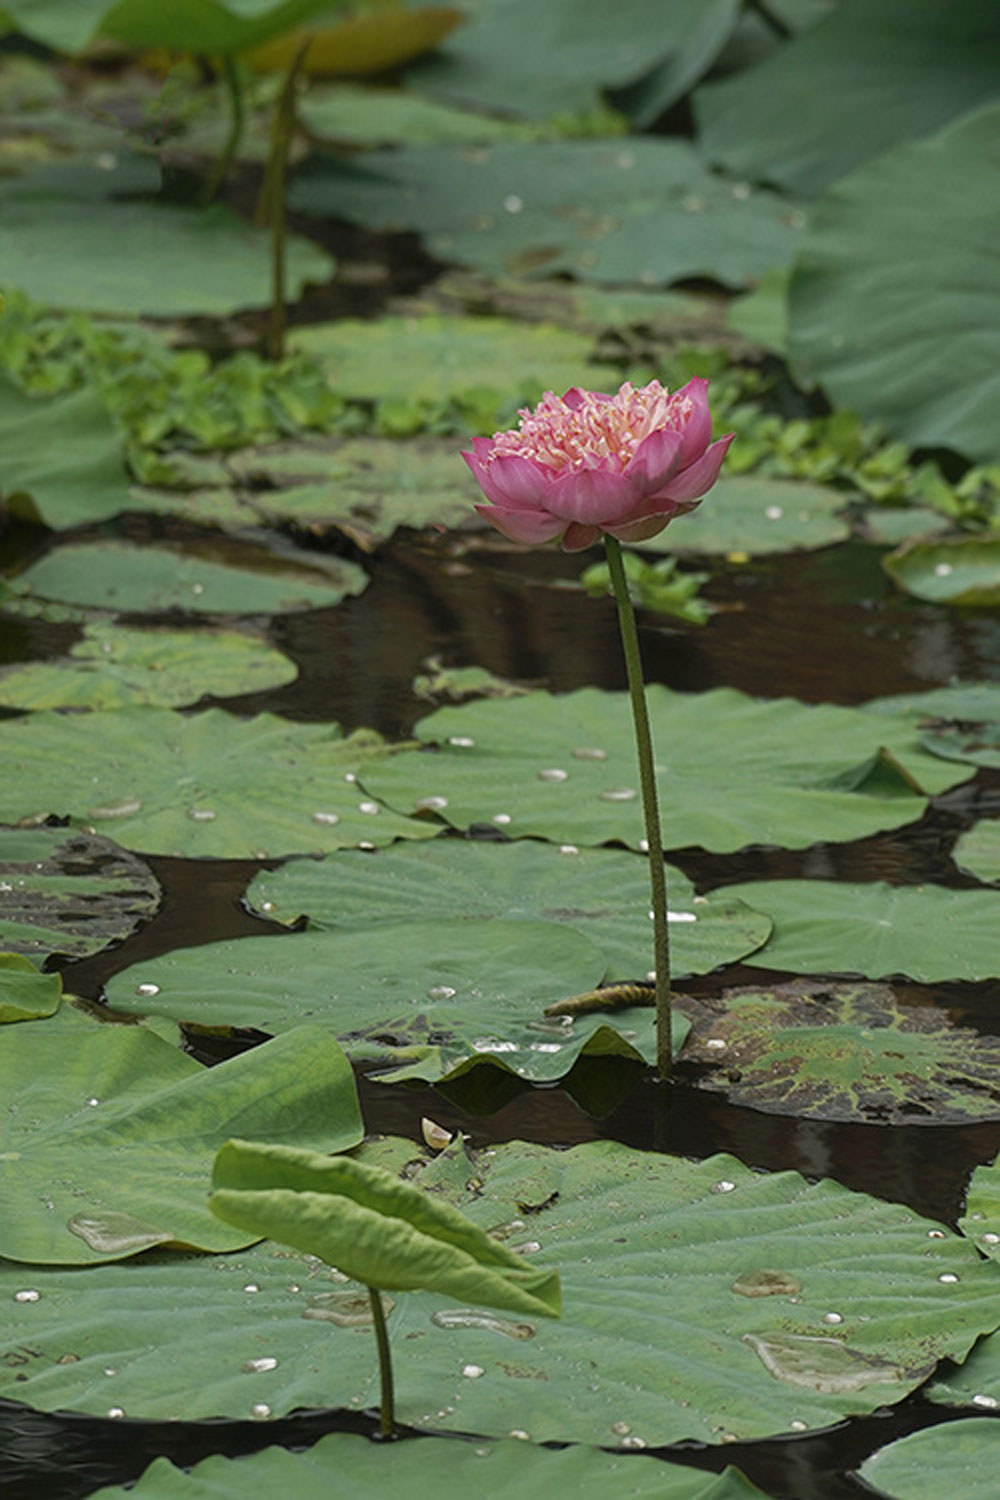 Vietnam, rare lotus species, wide variety of lotuses, scores of petals,  Thousand-petal lotuses, Moling lotus